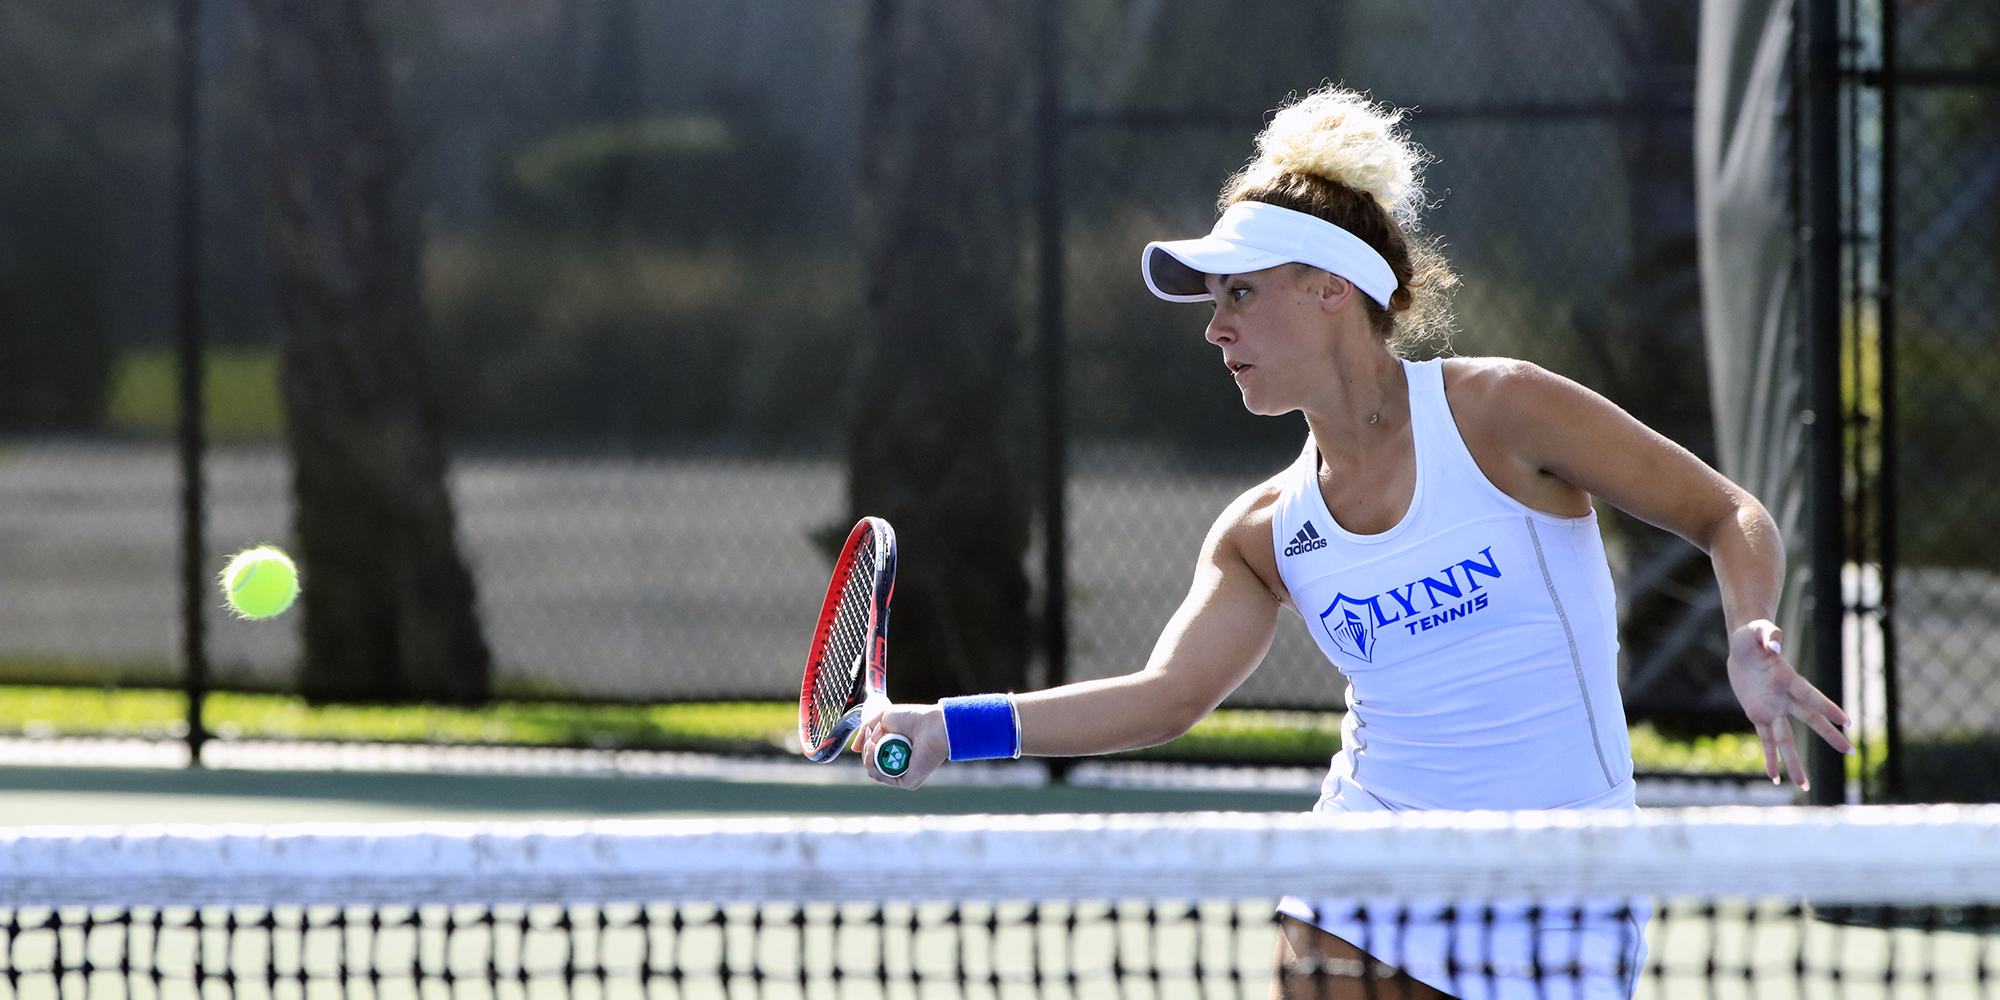 Women's Tennis Holds at No. 1, Jeanjean Enters Singles Top 10